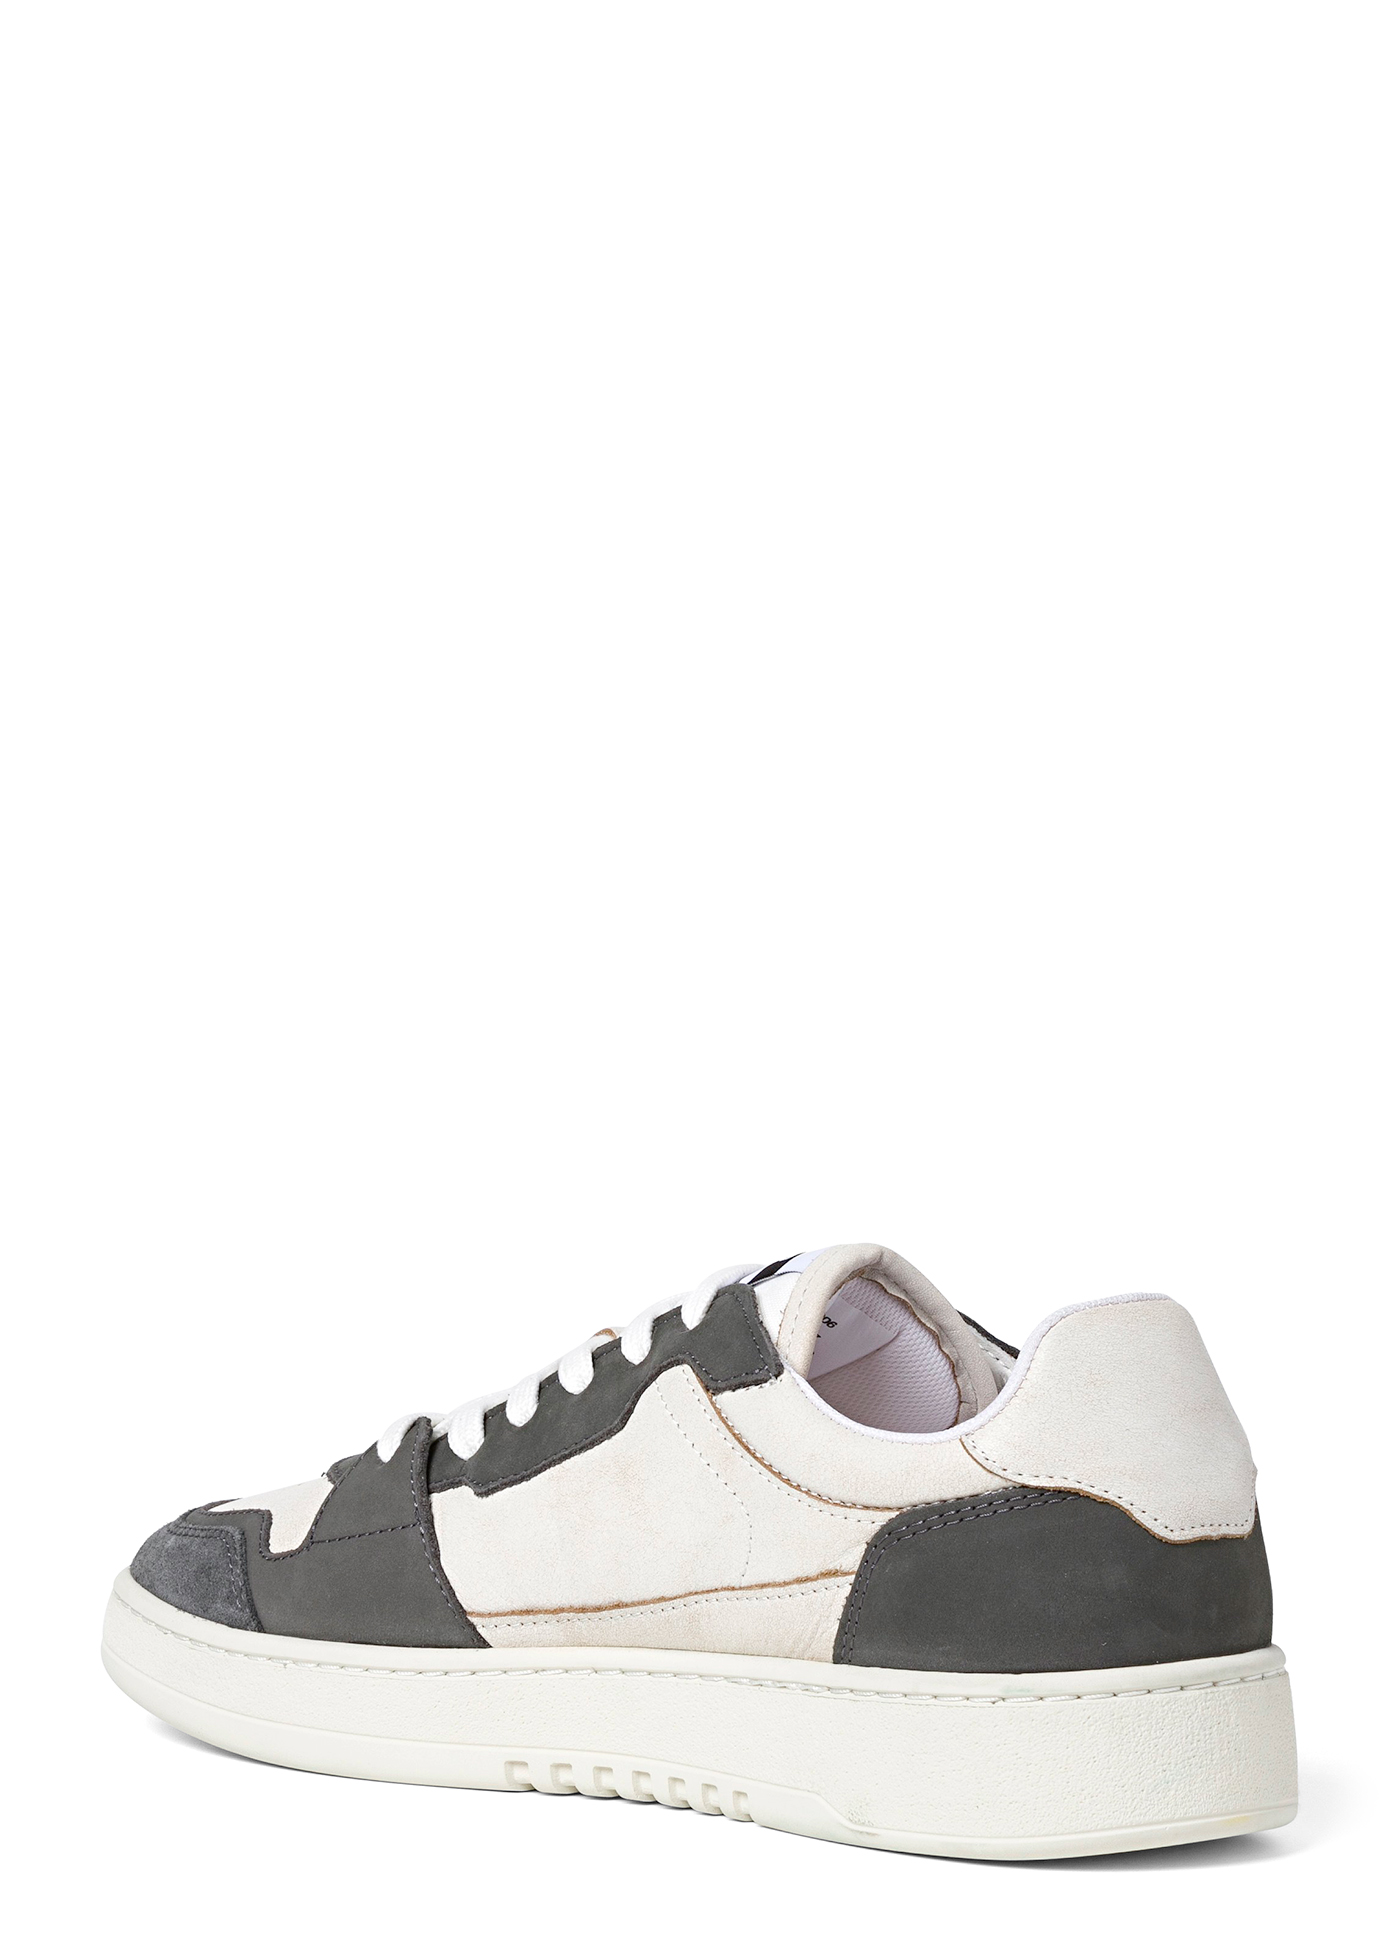 ACE Lo Sneaker image number 2